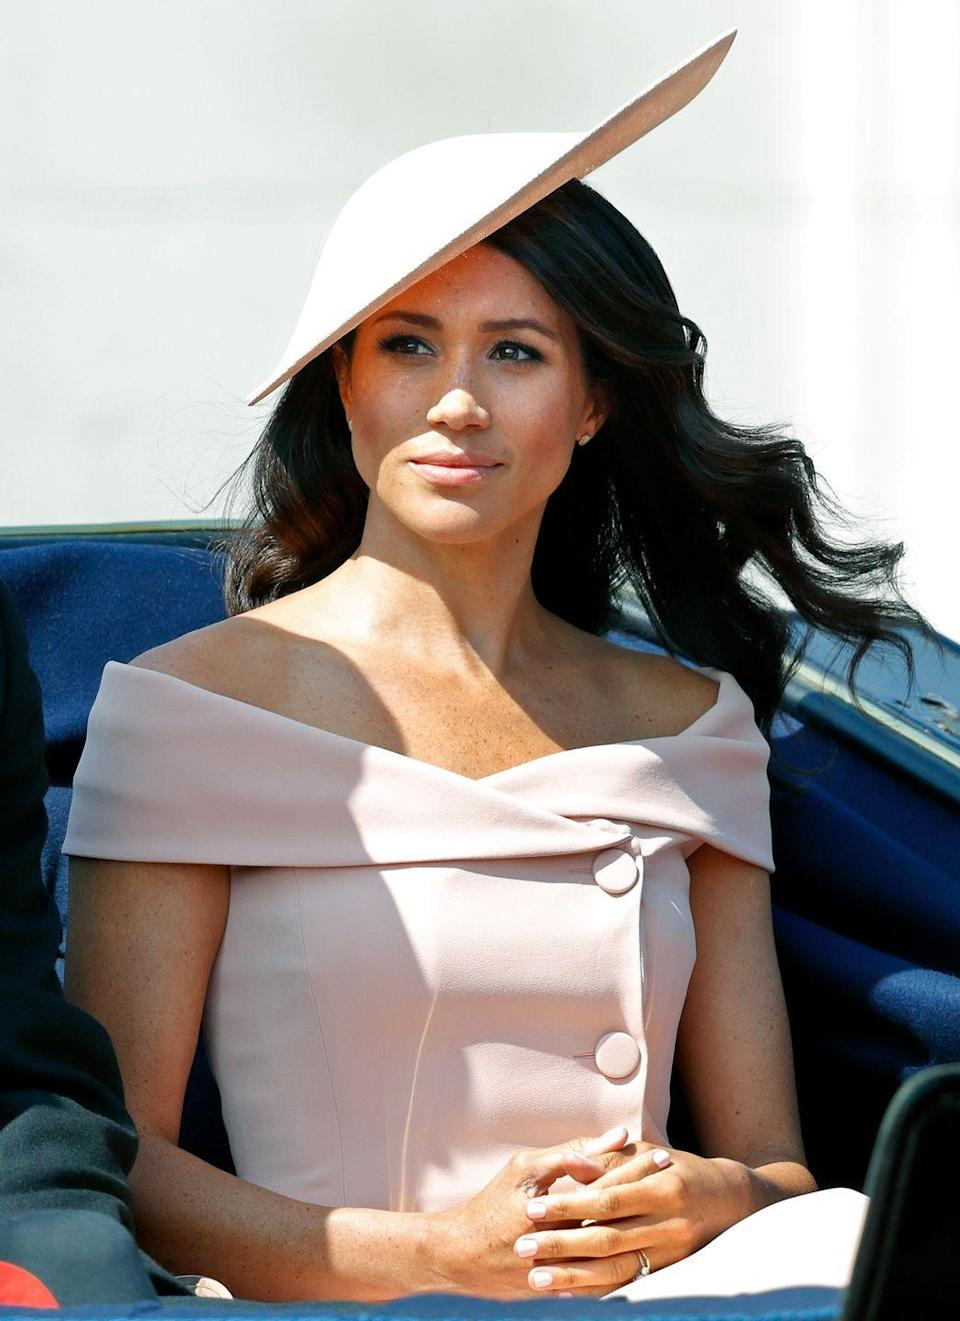 """<p><a href=""""https://www.goodhousekeeping.com/search/?q=Meghan+Markle"""" rel=""""nofollow noopener"""" target=""""_blank"""" data-ylk=""""slk:Meghan Markle"""" class=""""link rapid-noclick-resp"""">Meghan Markle</a> has been known to <a href=""""https://www.goodhousekeeping.com/beauty/fashion/g20720972/meghan-markle-scandalous-fashion/"""" rel=""""nofollow noopener"""" target=""""_blank"""" data-ylk=""""slk:break some of the British royalty's rules"""" class=""""link rapid-noclick-resp"""">break some of the British royalty's rules </a>when it comes to fashion. This chic Carolina Herrera dress she wore to the Trooping of the Colour parade in 2018 was admired by many, but <a href=""""https://www.bustle.com/p/meghan-markles-trooping-the-colour-dress-broke-royal-protocol-but-does-the-queen-honestly-care-9355720"""" rel=""""nofollow noopener"""" target=""""_blank"""" data-ylk=""""slk:others critiqued her"""" class=""""link rapid-noclick-resp"""">others critiqued her</a> for breaking the rules by baring her shoulders, which supposedly was seen as drawing attention away from the Queen. </p>"""